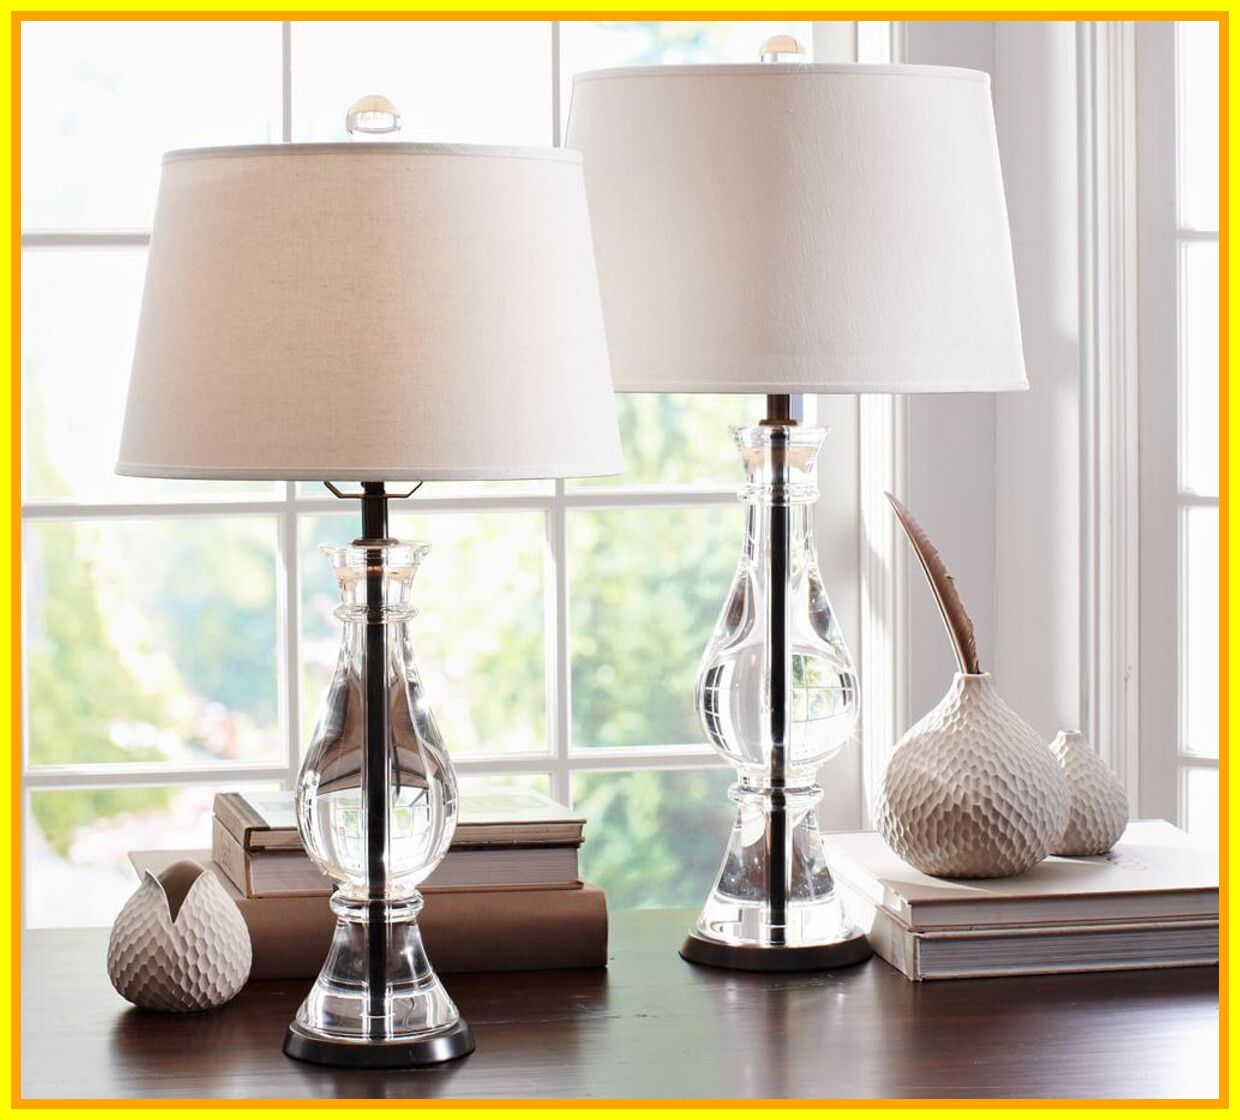 48 Reference Of Small Bedside Lamps Australia In 2020 Crystal